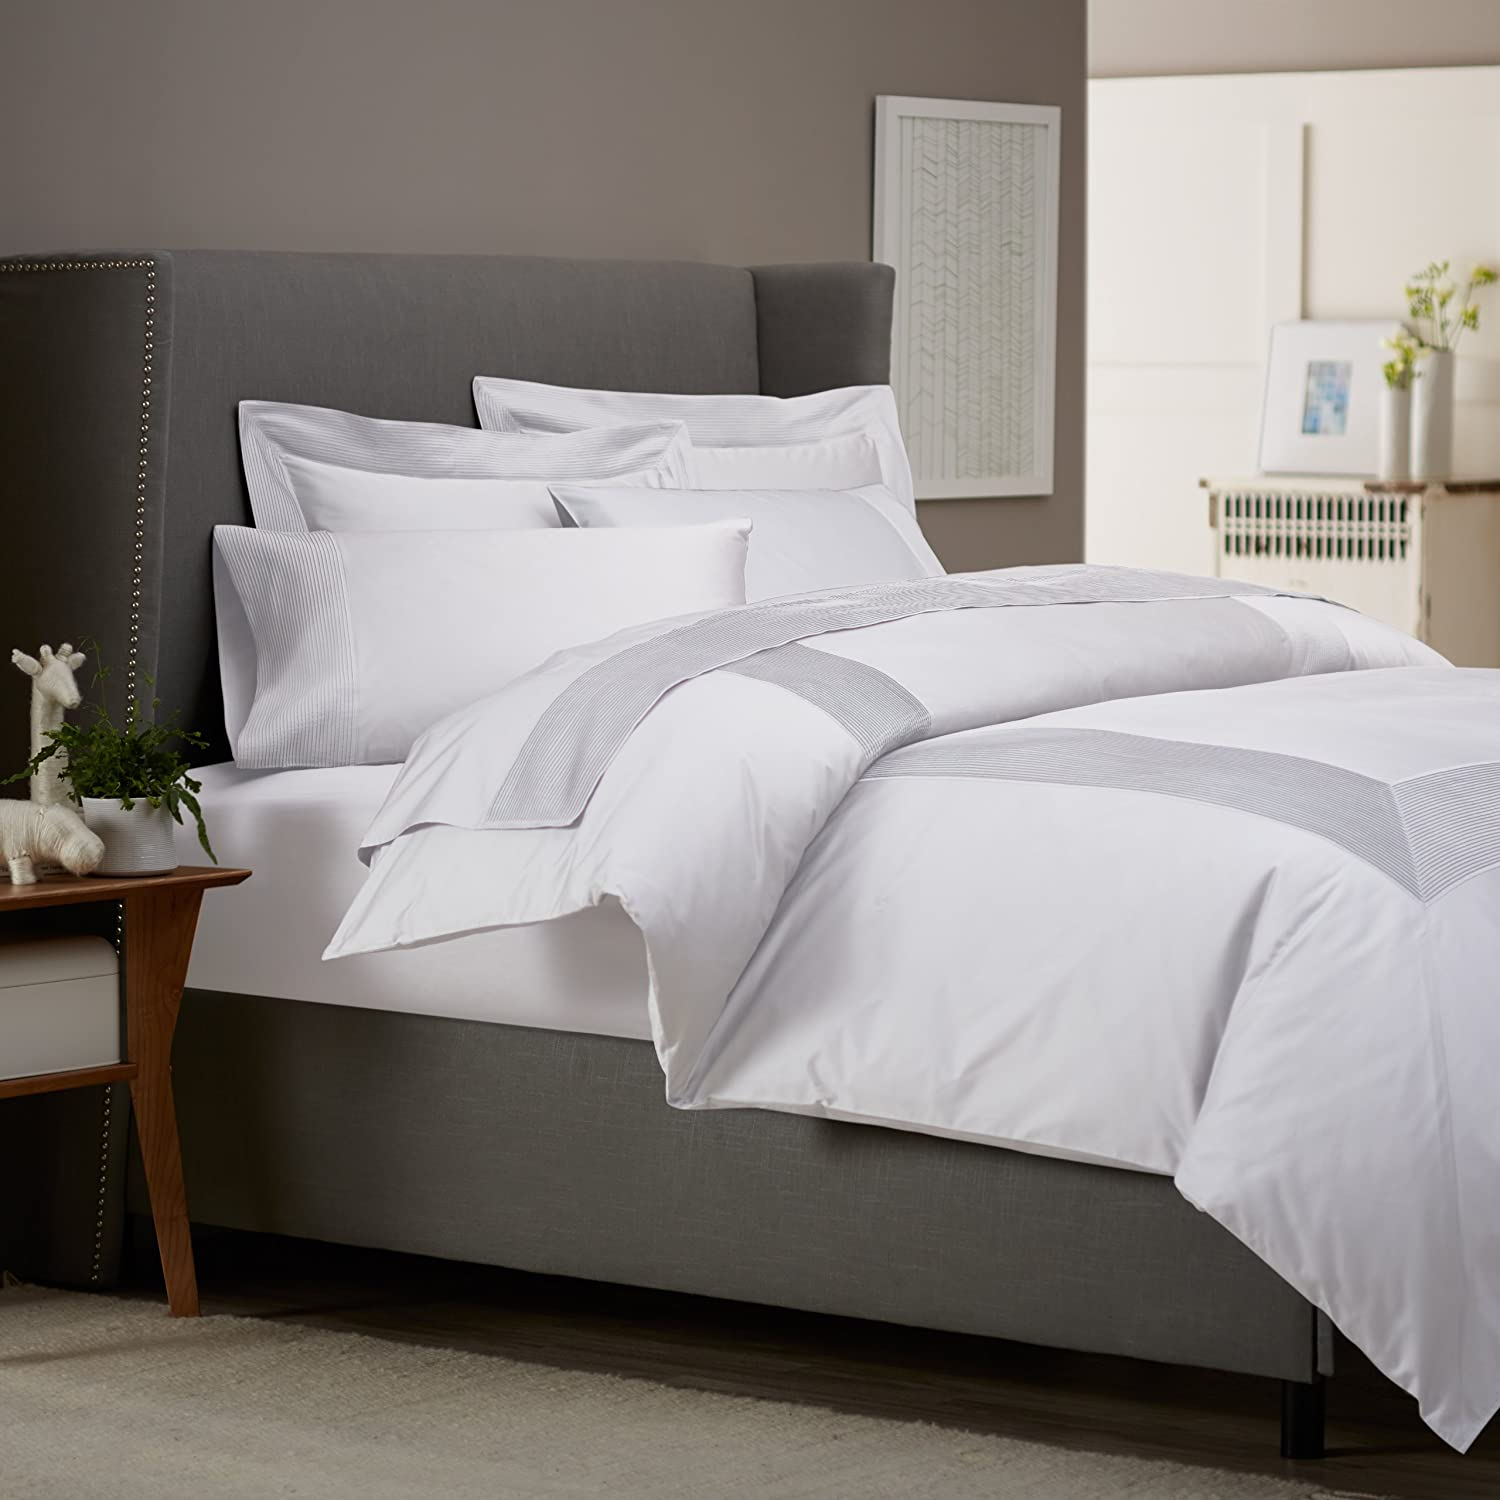 Lovely white bedding sets for Bed settings